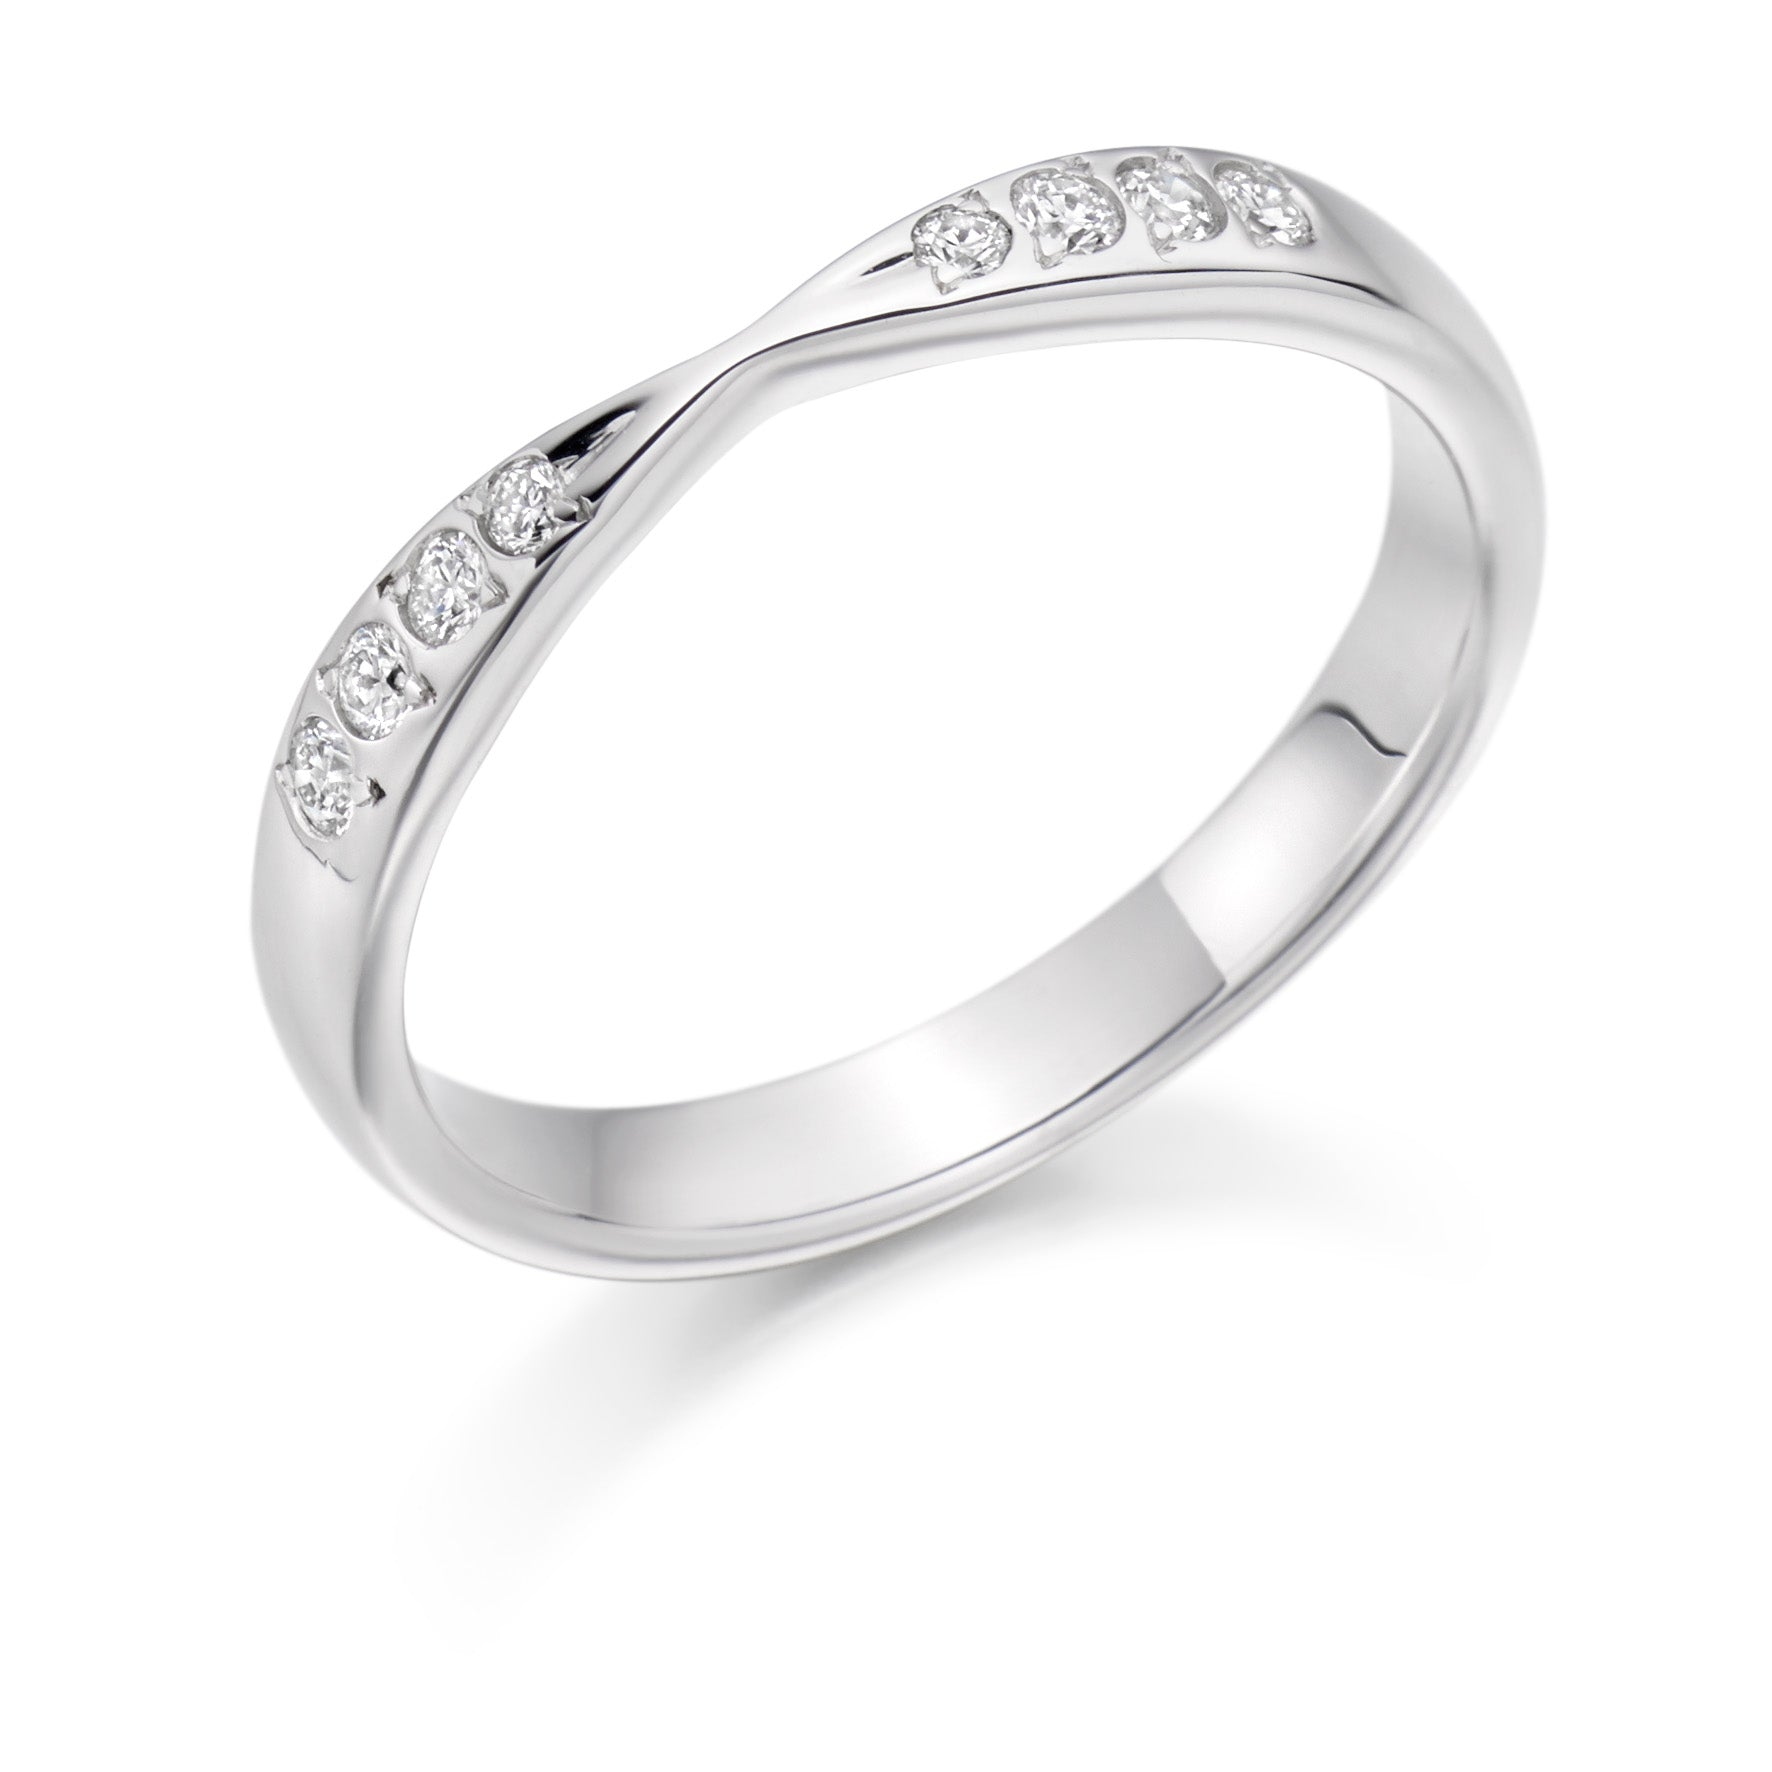 0.15ct Round Brilliant Cut Diamonds Curved and shaped - Eternity Ring - (Home Try-On)